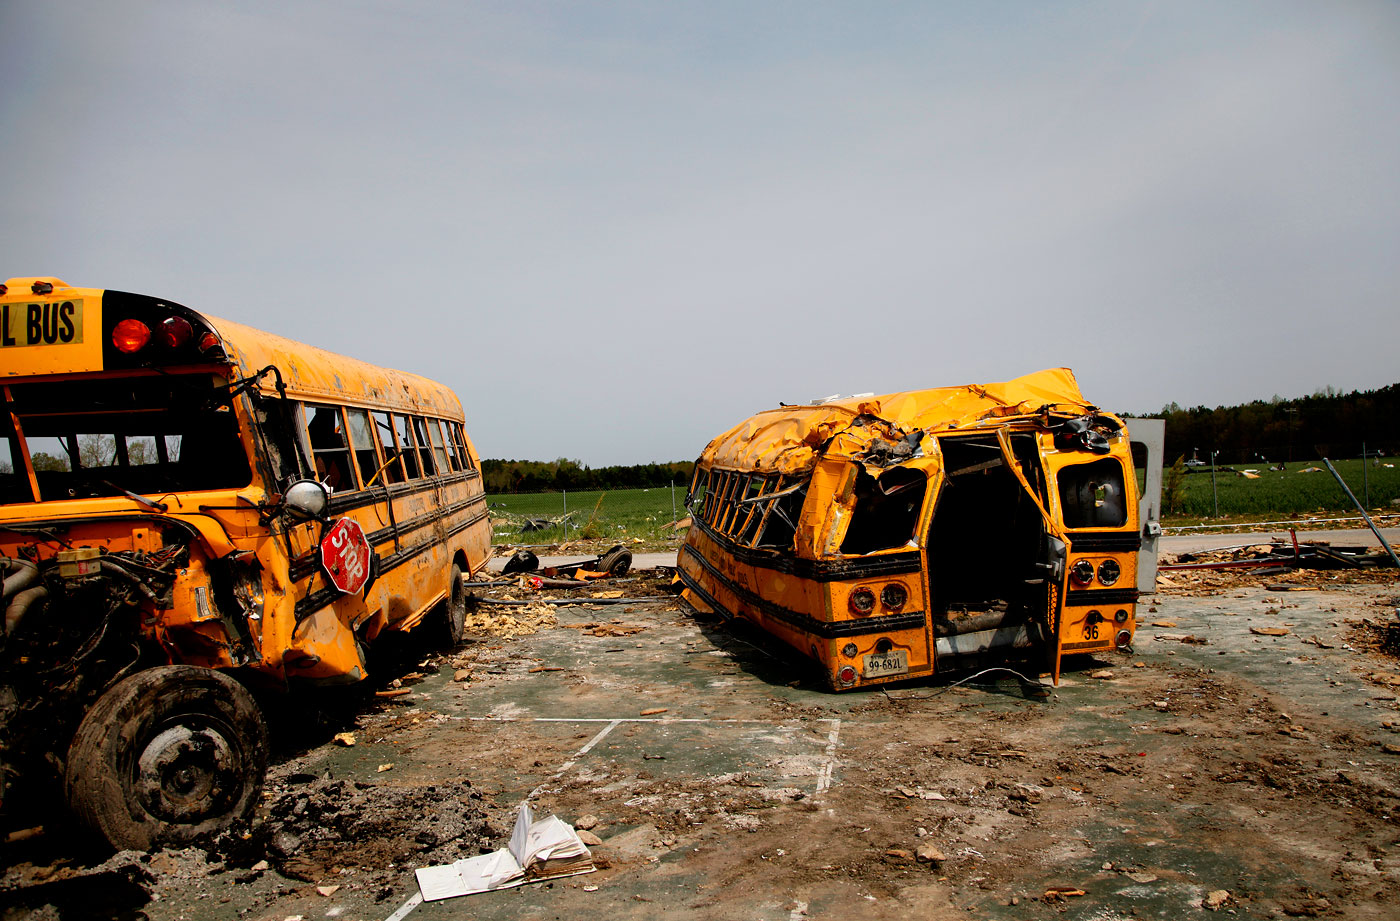 Tornado-damaged school buses at Page Middle School in Gloucester, Va., on Monday, April 18, 2011.